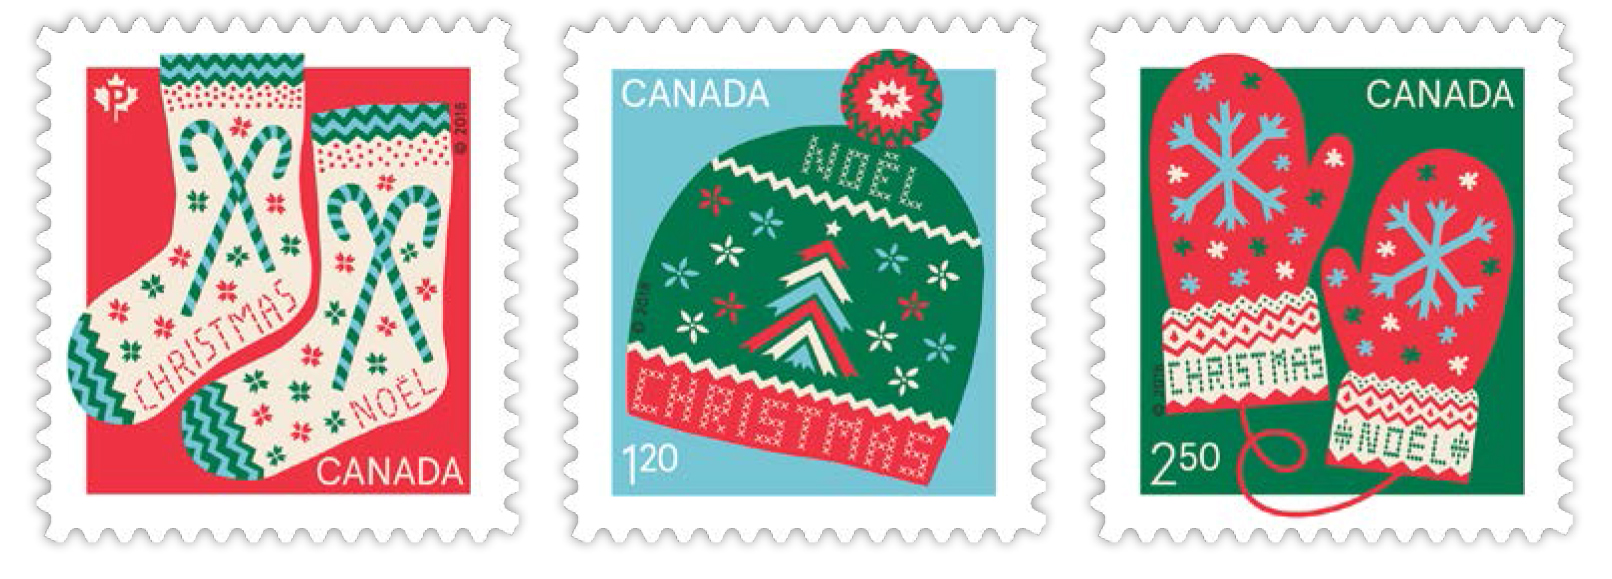 Postage Stamps Christmas 2019 Sneak Preview of Canada Post's Coming Issues for 2019